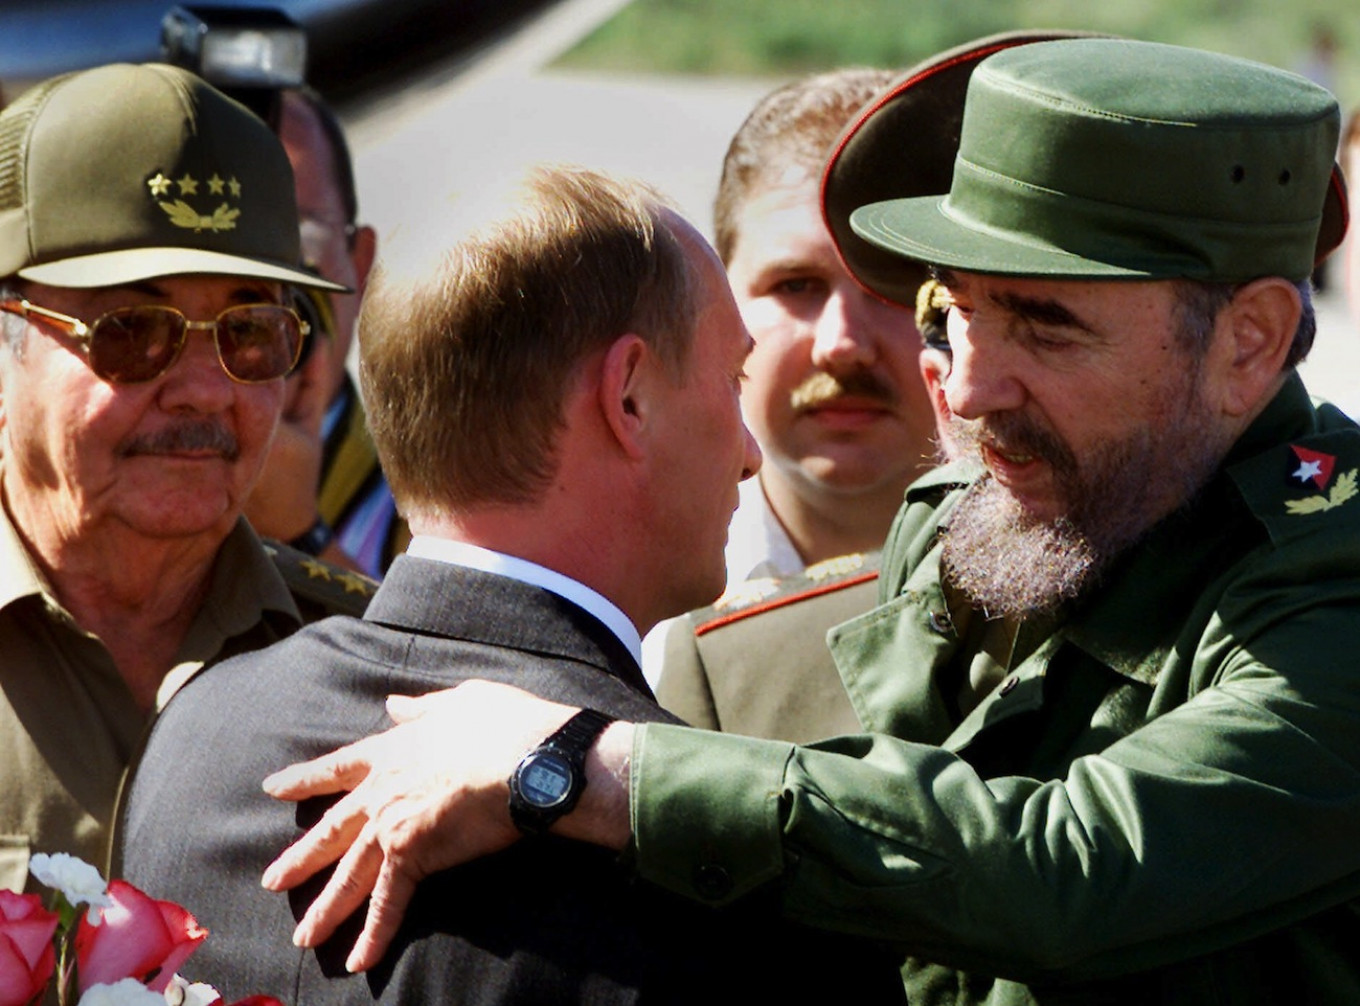 Since the Soviet collapse of 1991, the myth of Cuba may have lost some of its luster. Jose Goitia / AP